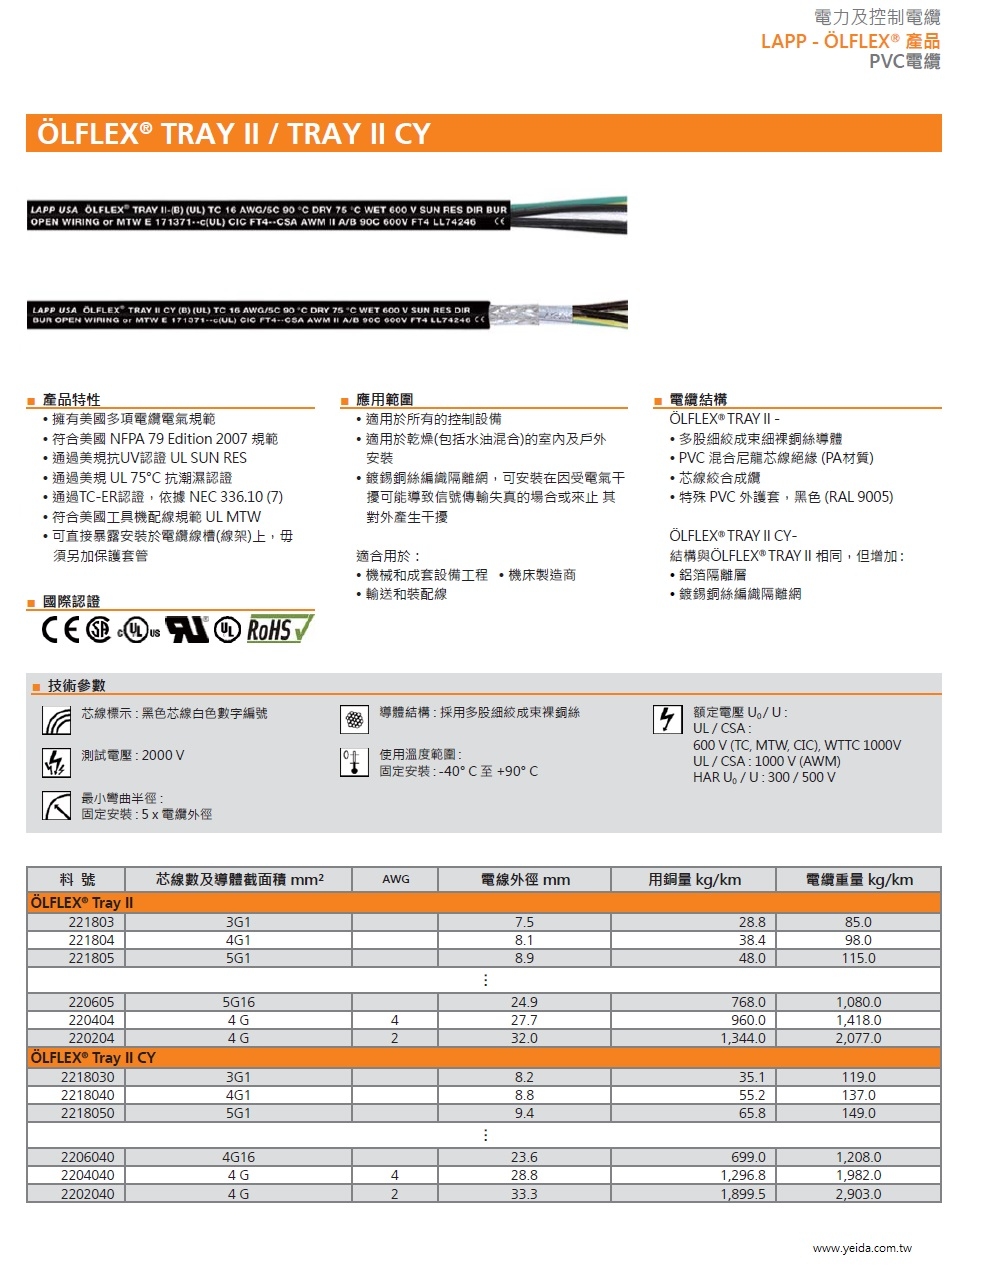 LAPP  OLFLEX® TRAY II CY 工業級(鍍錫銅網隔離)連接線 multiple approvals; Cost saving, easy installation due to renouncement of closed raceways (suitable for open wiring)產品圖